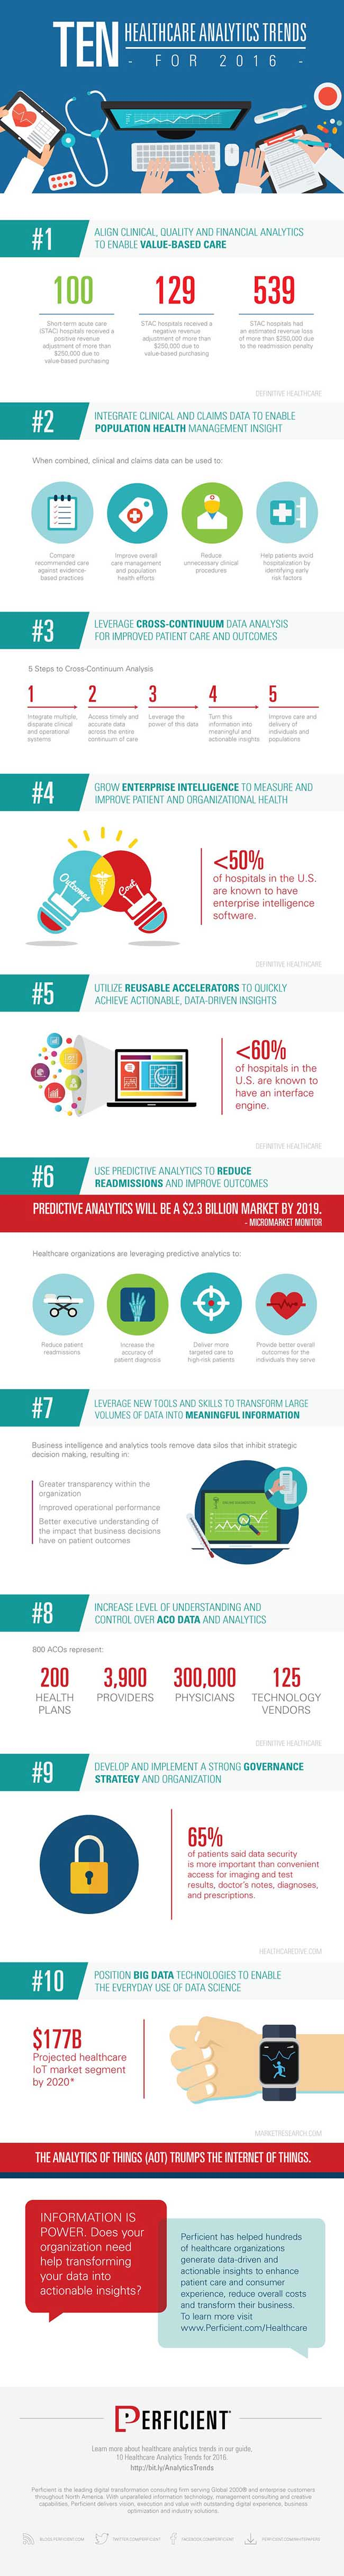 healthcare_analytics_infographic_for_hospital_wireless_networks.jpg